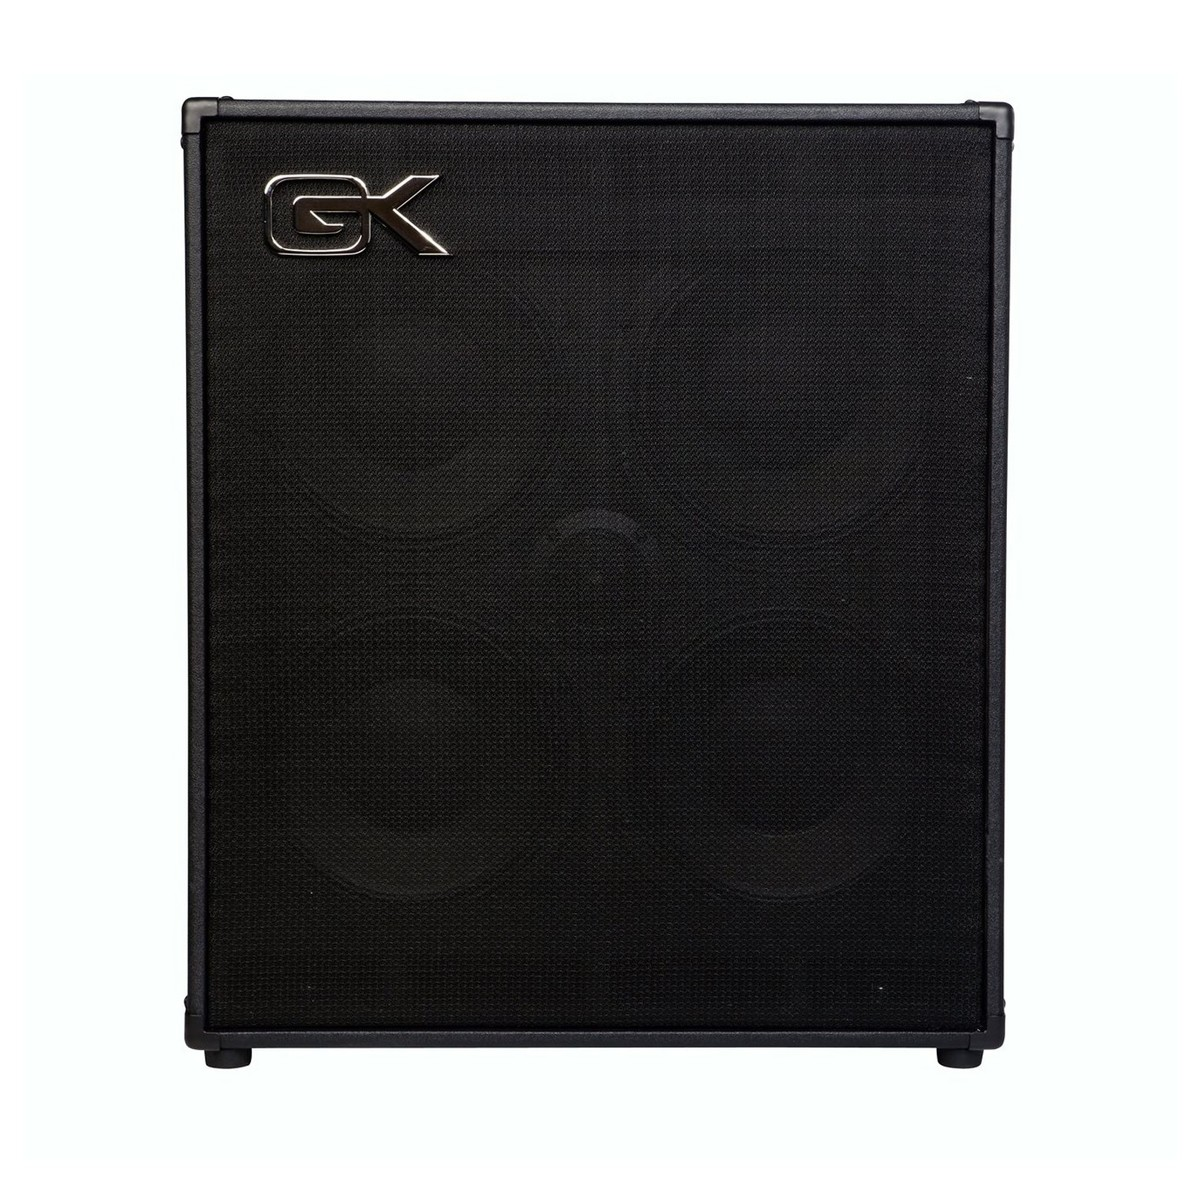 Click to view product details and reviews for Gallien Krueger Cx 410 4ohm Bass Cab.